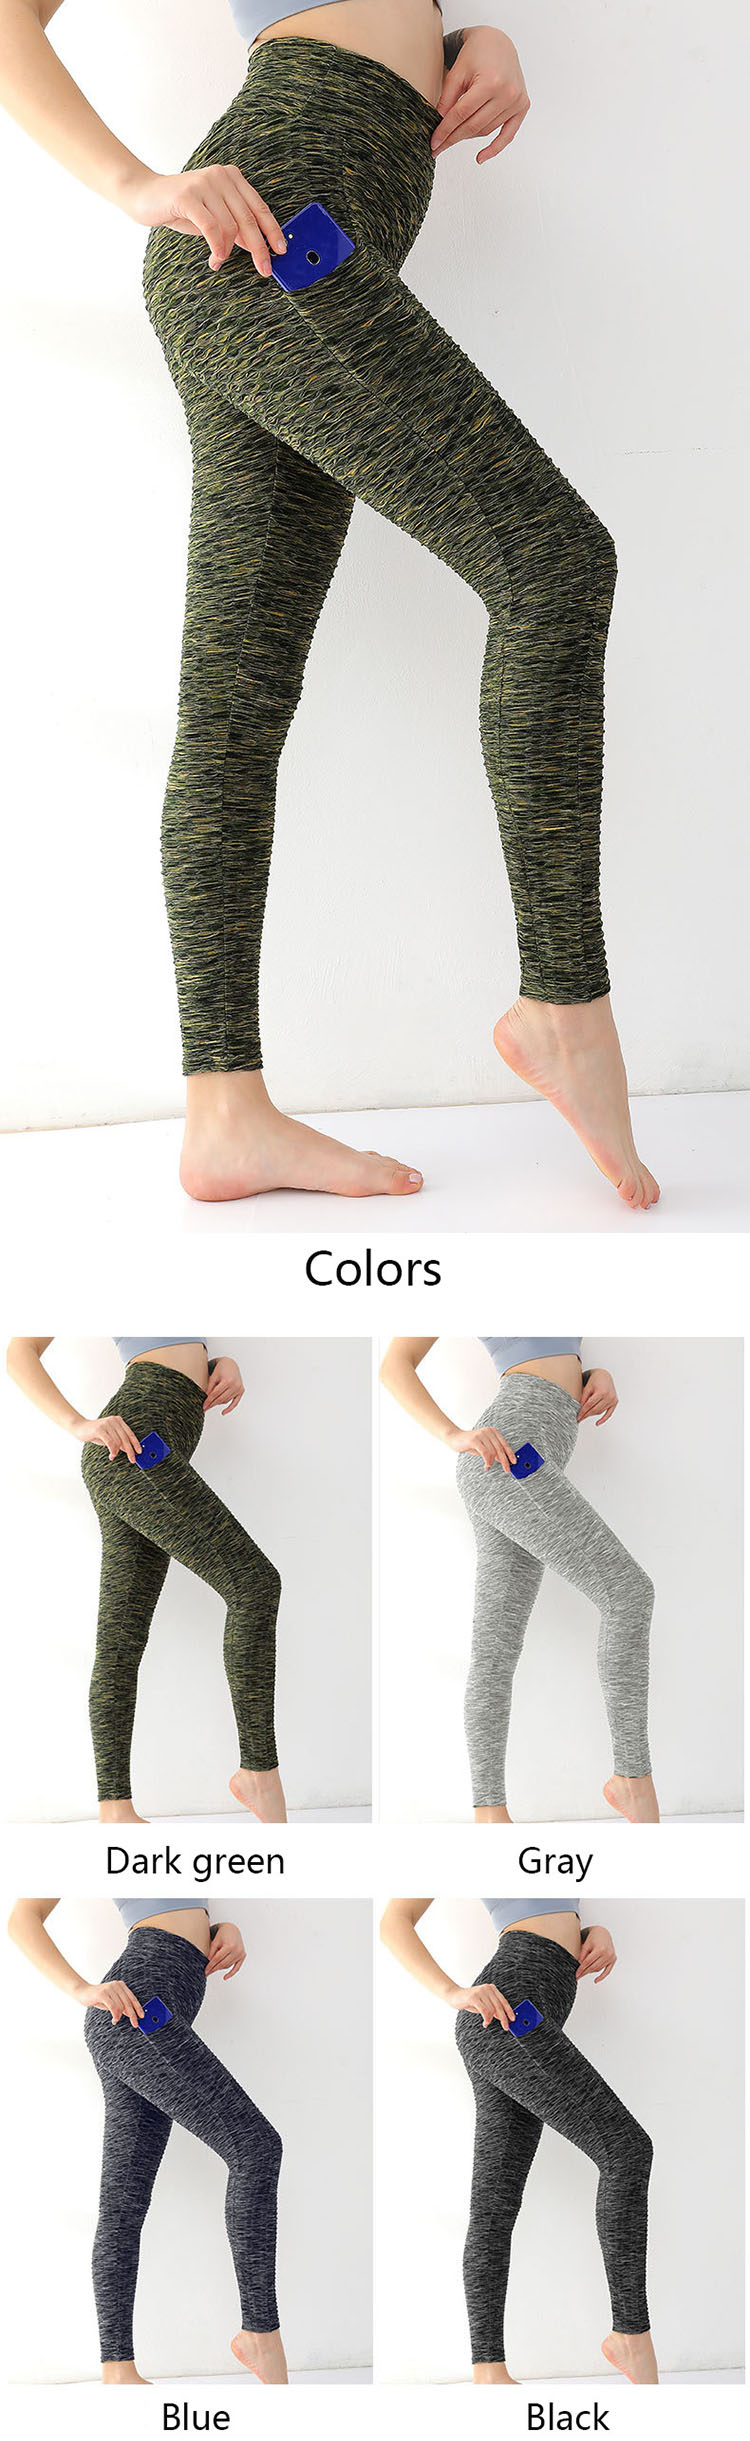 Types of yoga pants are very inclusive. The hollow design combines the changes of knitted texture